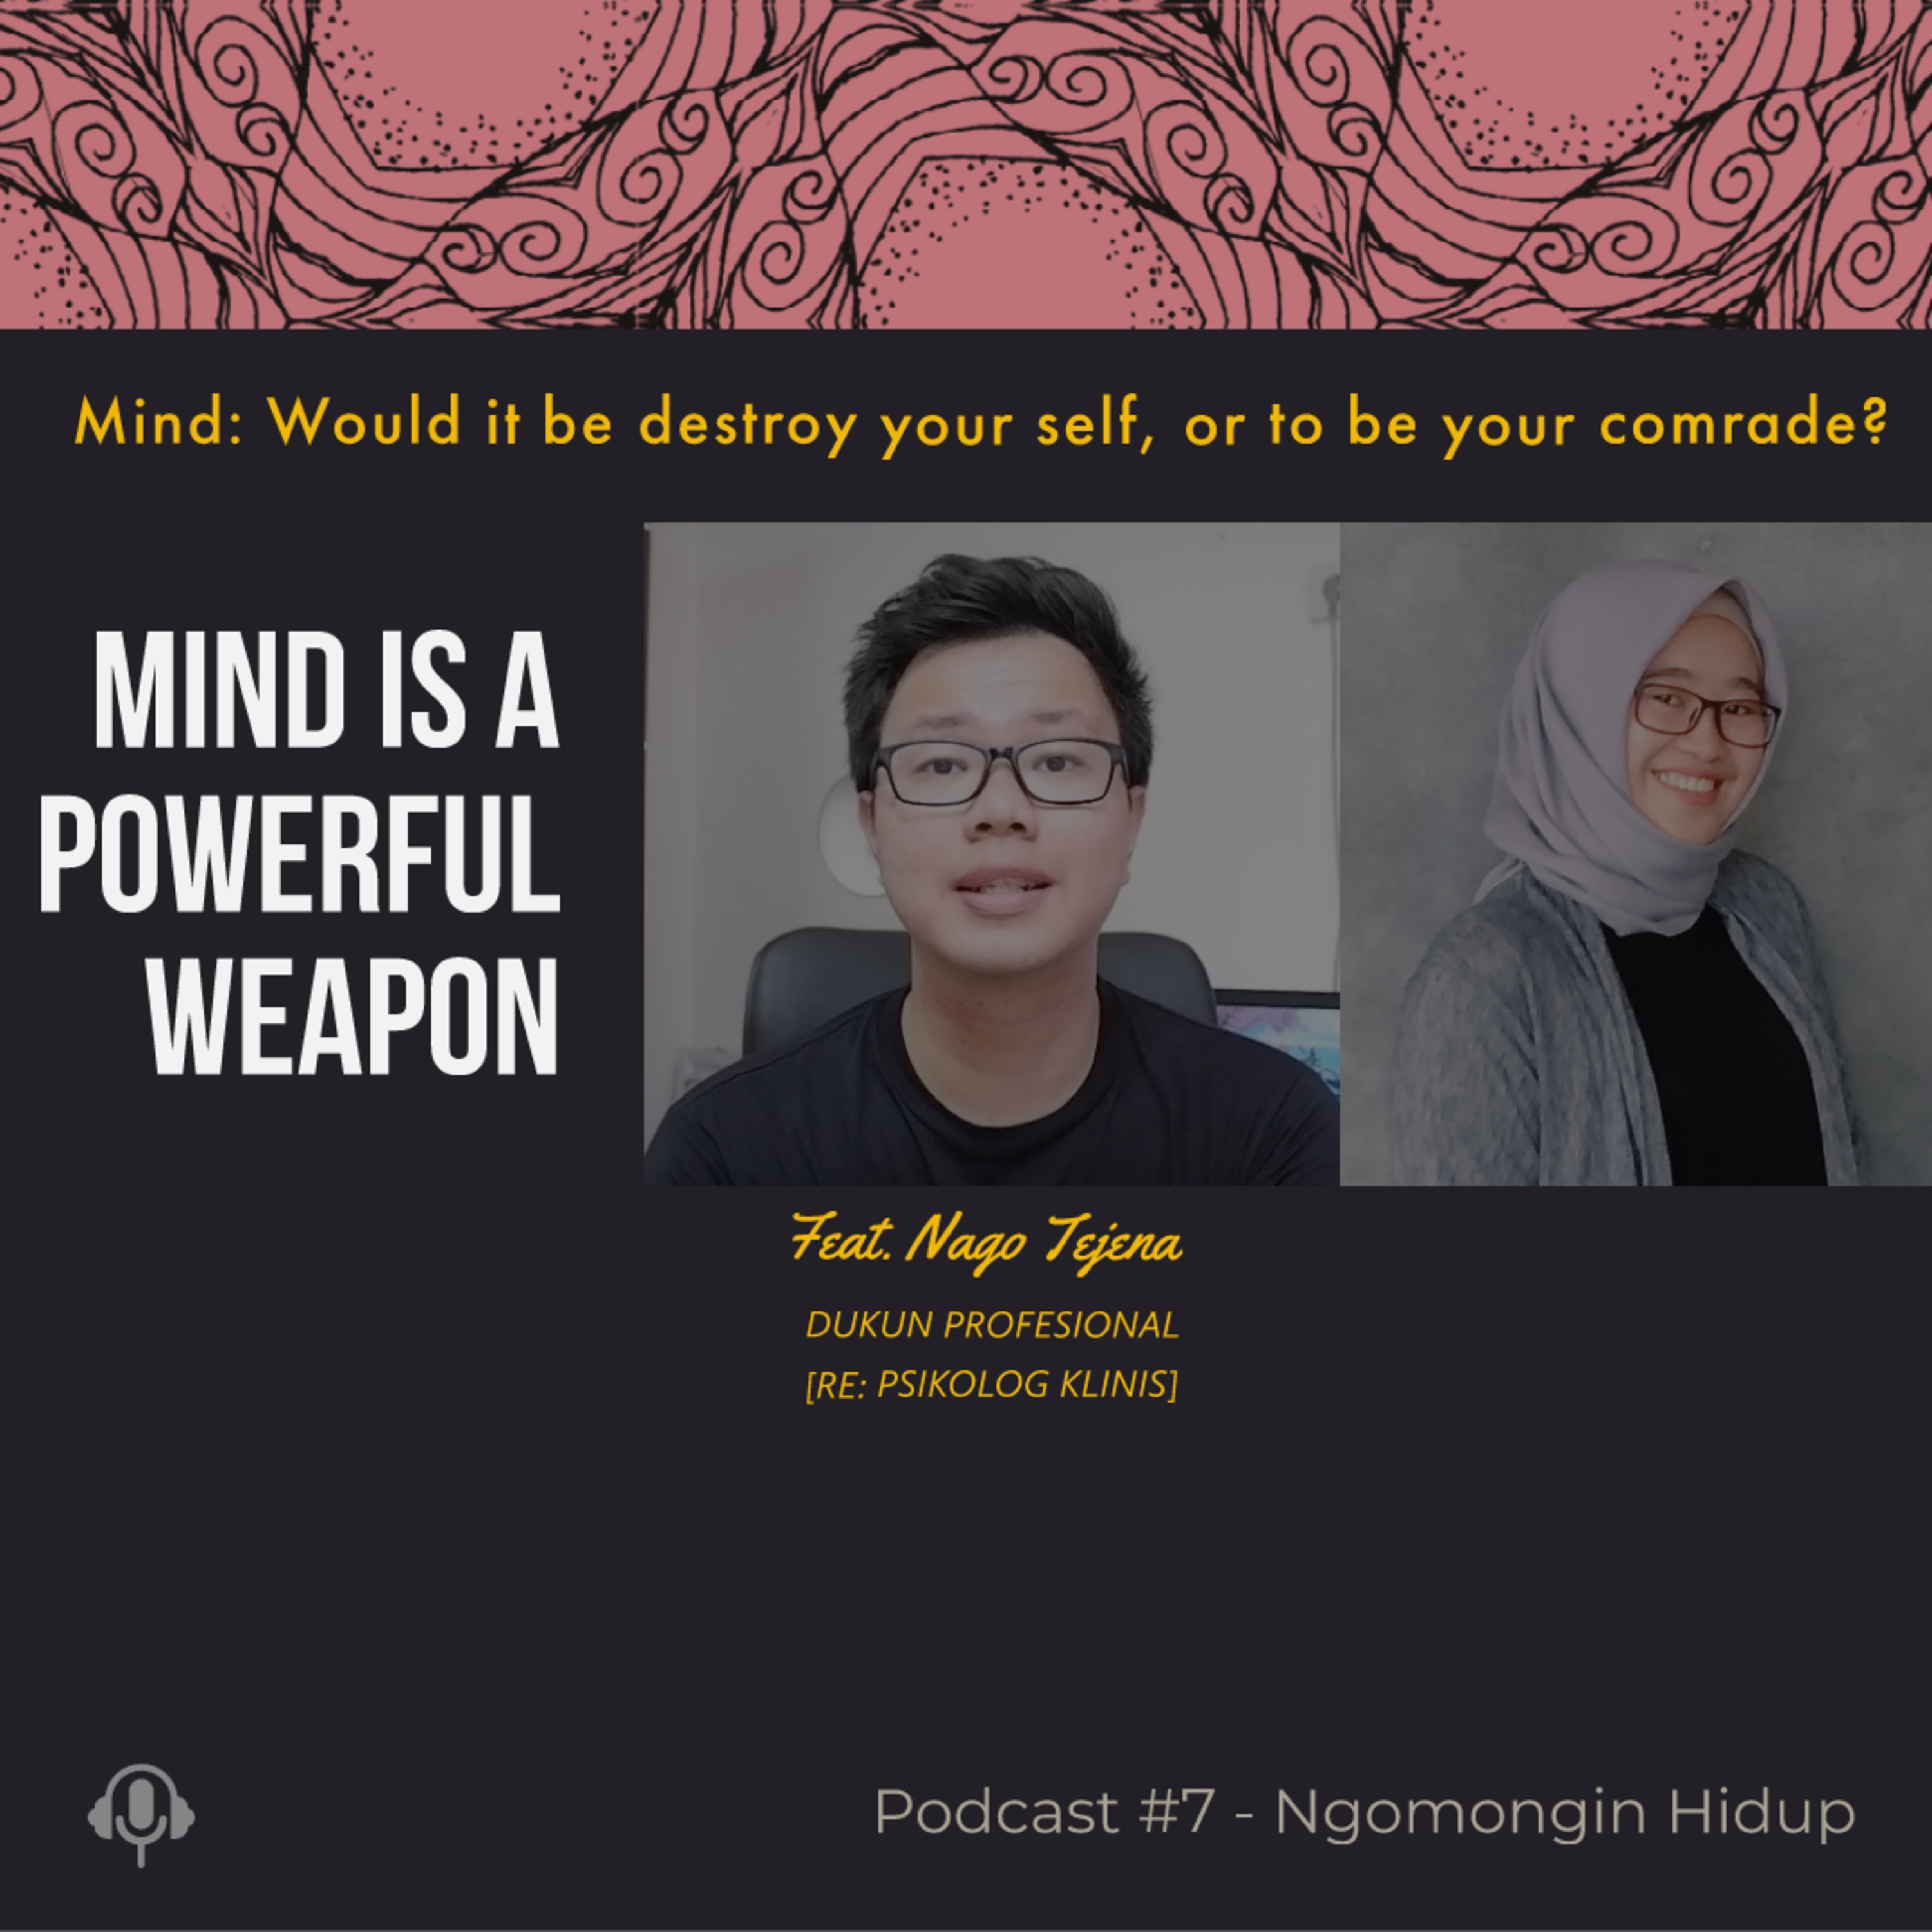 Mind is a Powerful Weapon - Would it be your self destroyer, or your comrade?